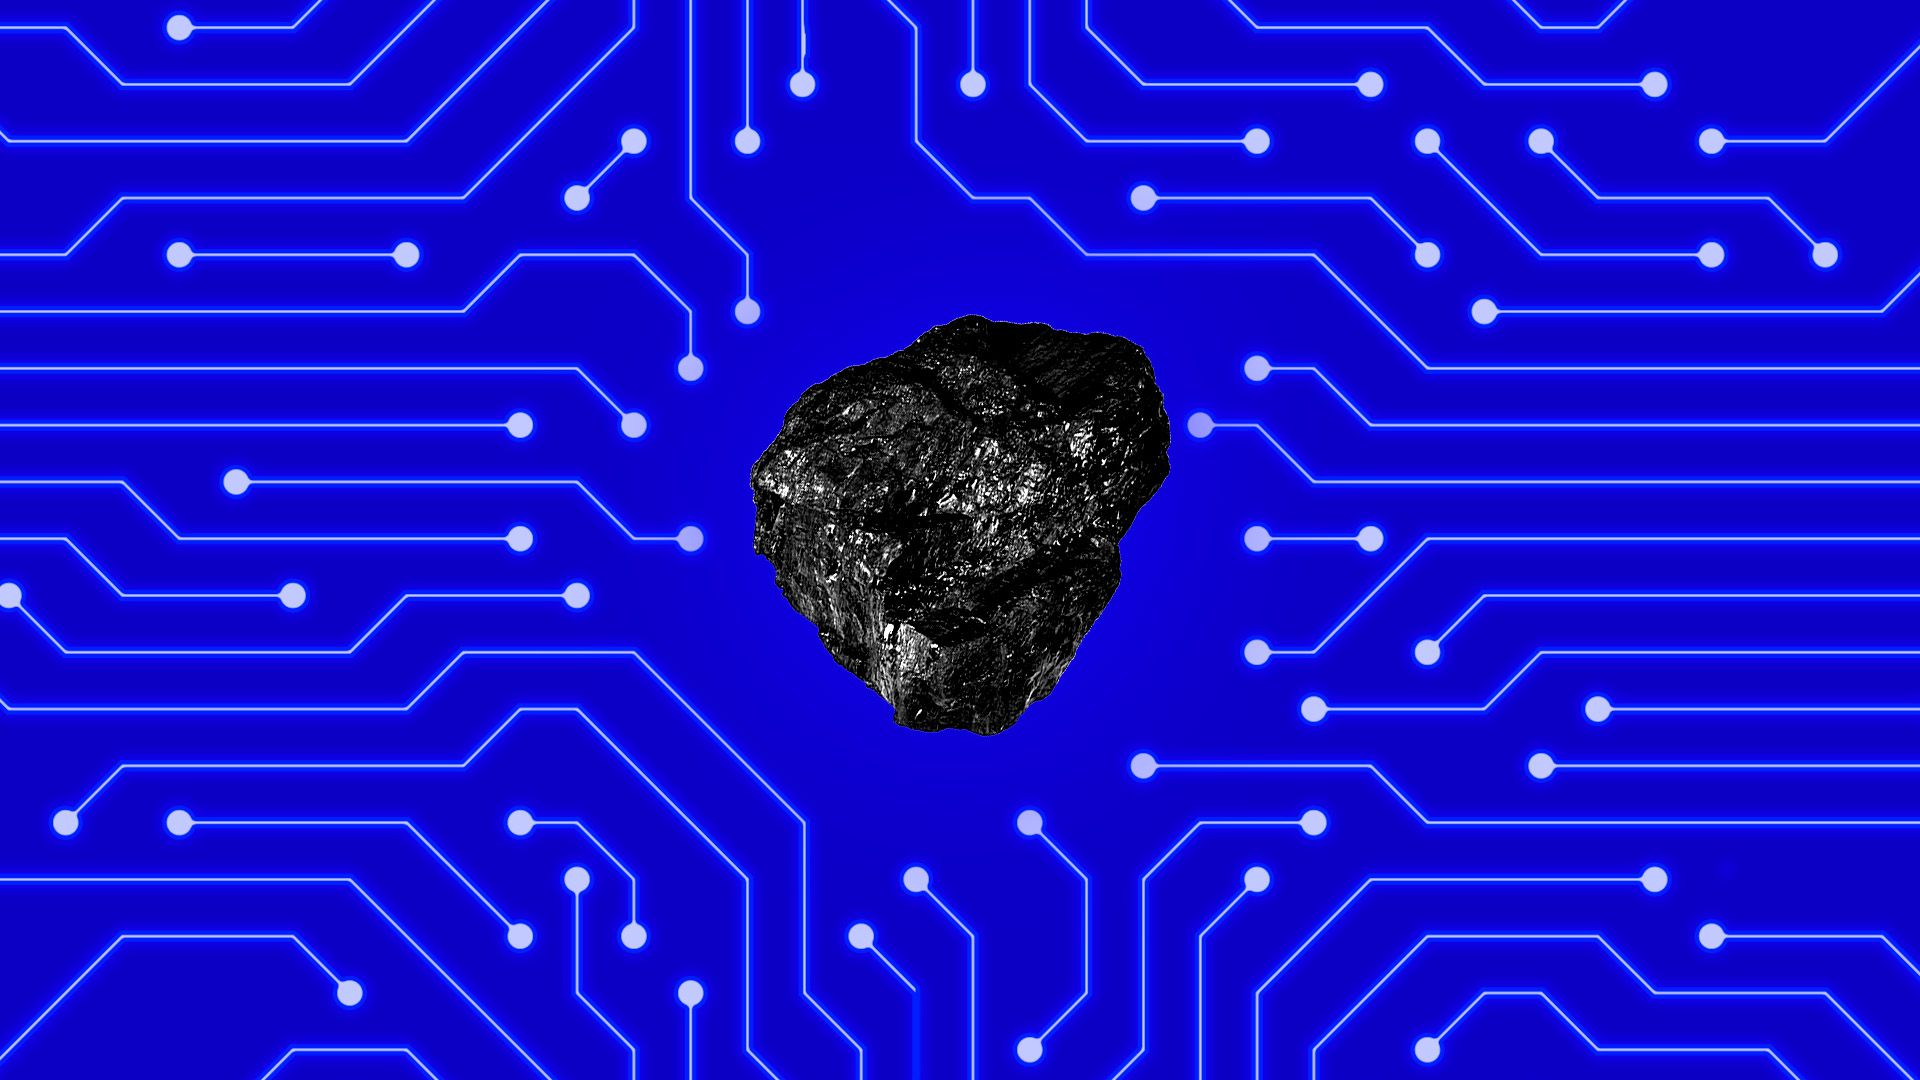 Image of a piece of coal against a backdrop of circuits